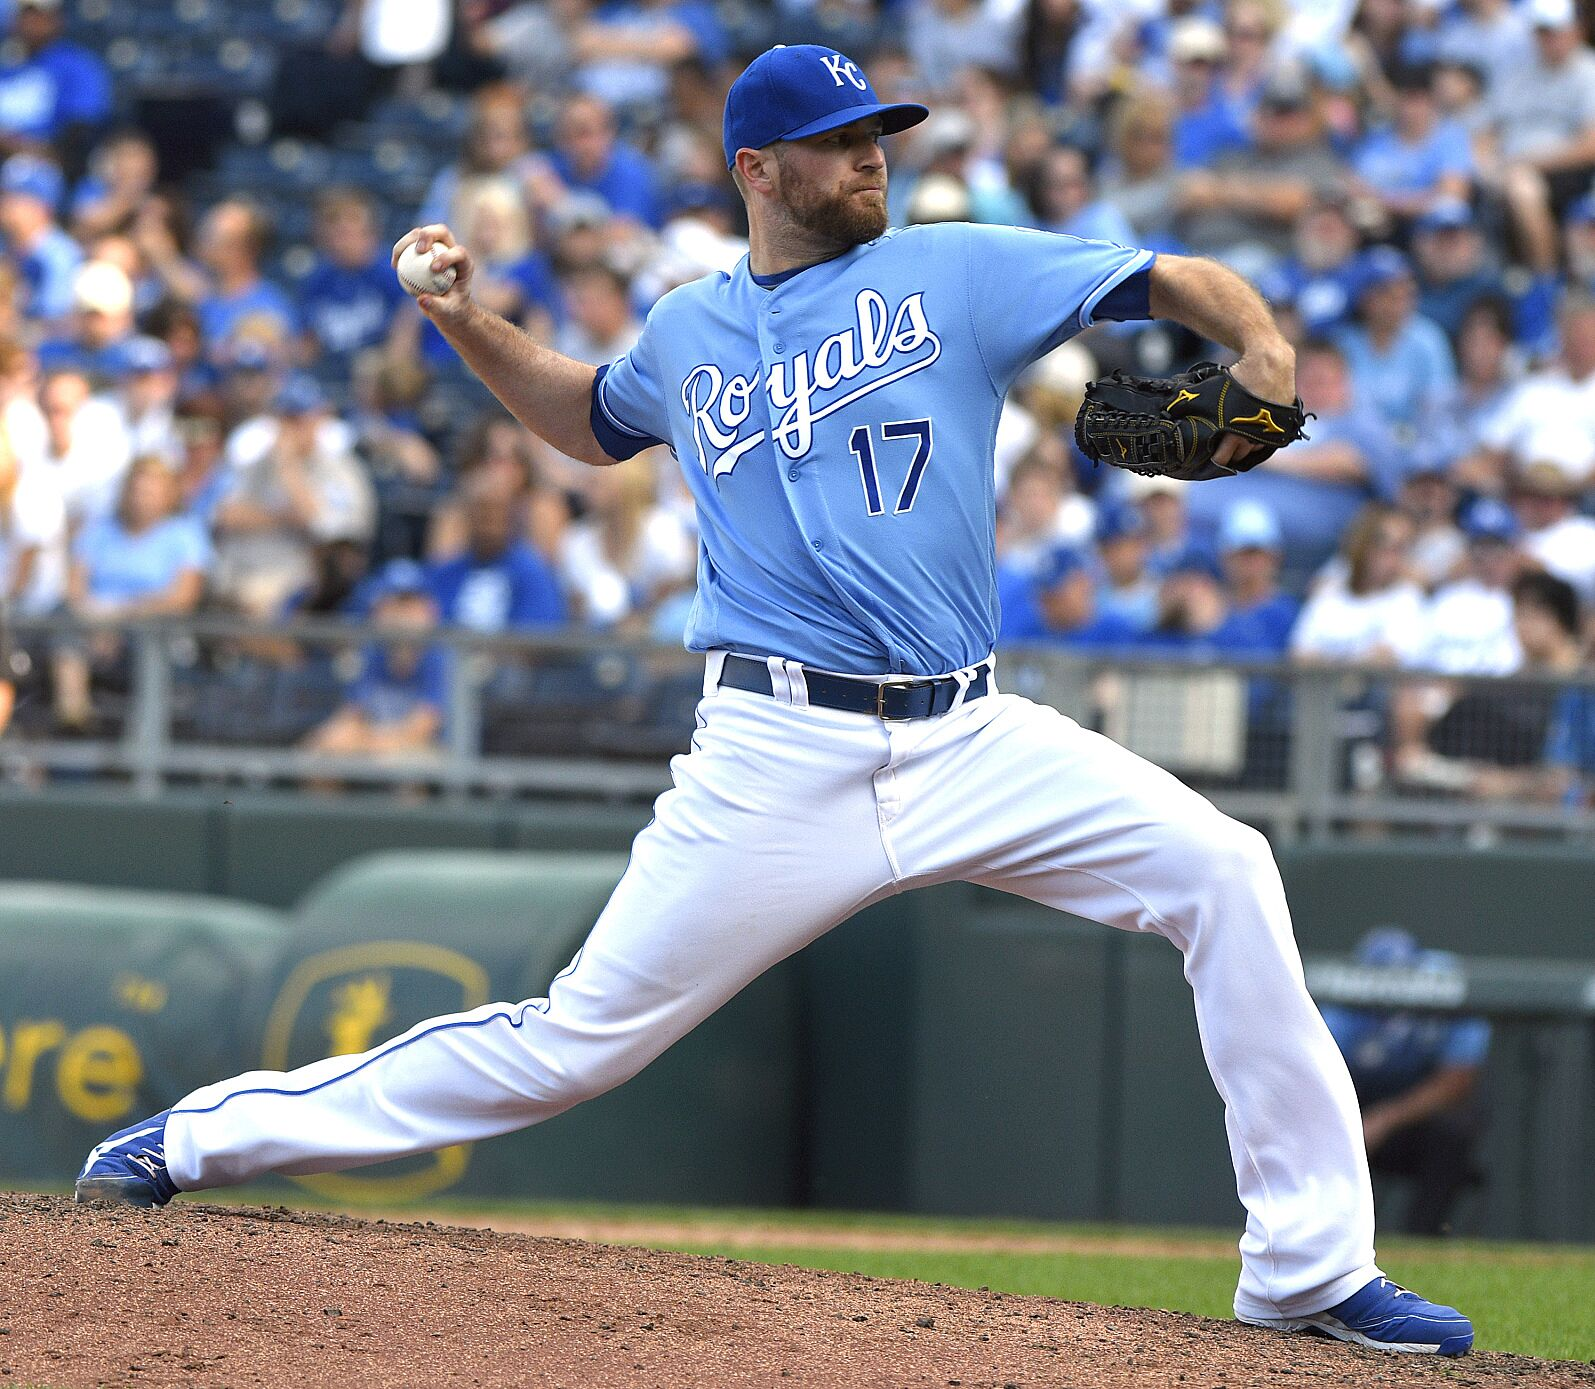 Kansas City Royals: More than one way to build a bullpen